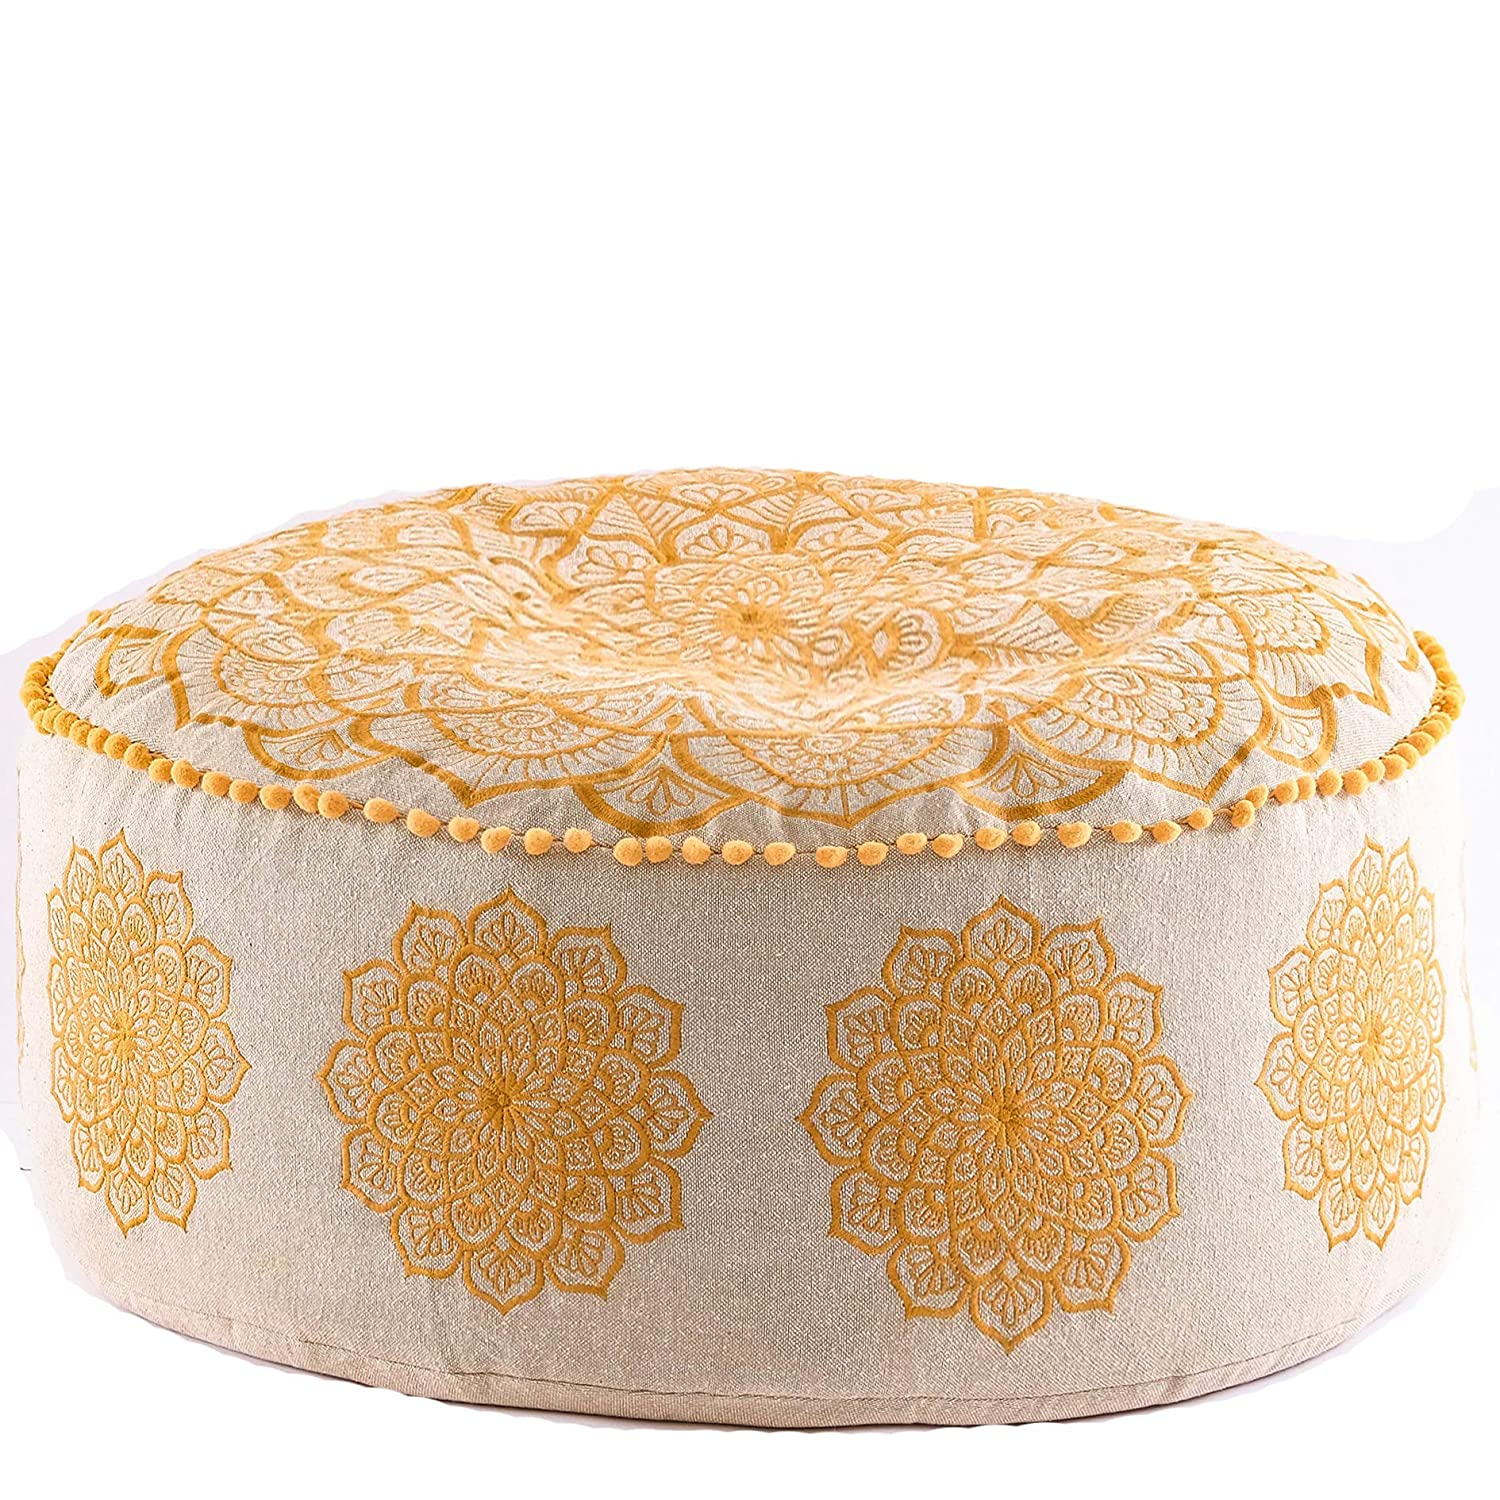 Bohemian Pouf Ottoman –STUFFED - Luxury, Artisan Room Décor Pouffe for Meditation, Yoga, and Boho Chic Seating Area Stool Floor Pillow – Accent Your Living Room, Bedroom, More – Handmade in India by Mandala Life ART Insert4